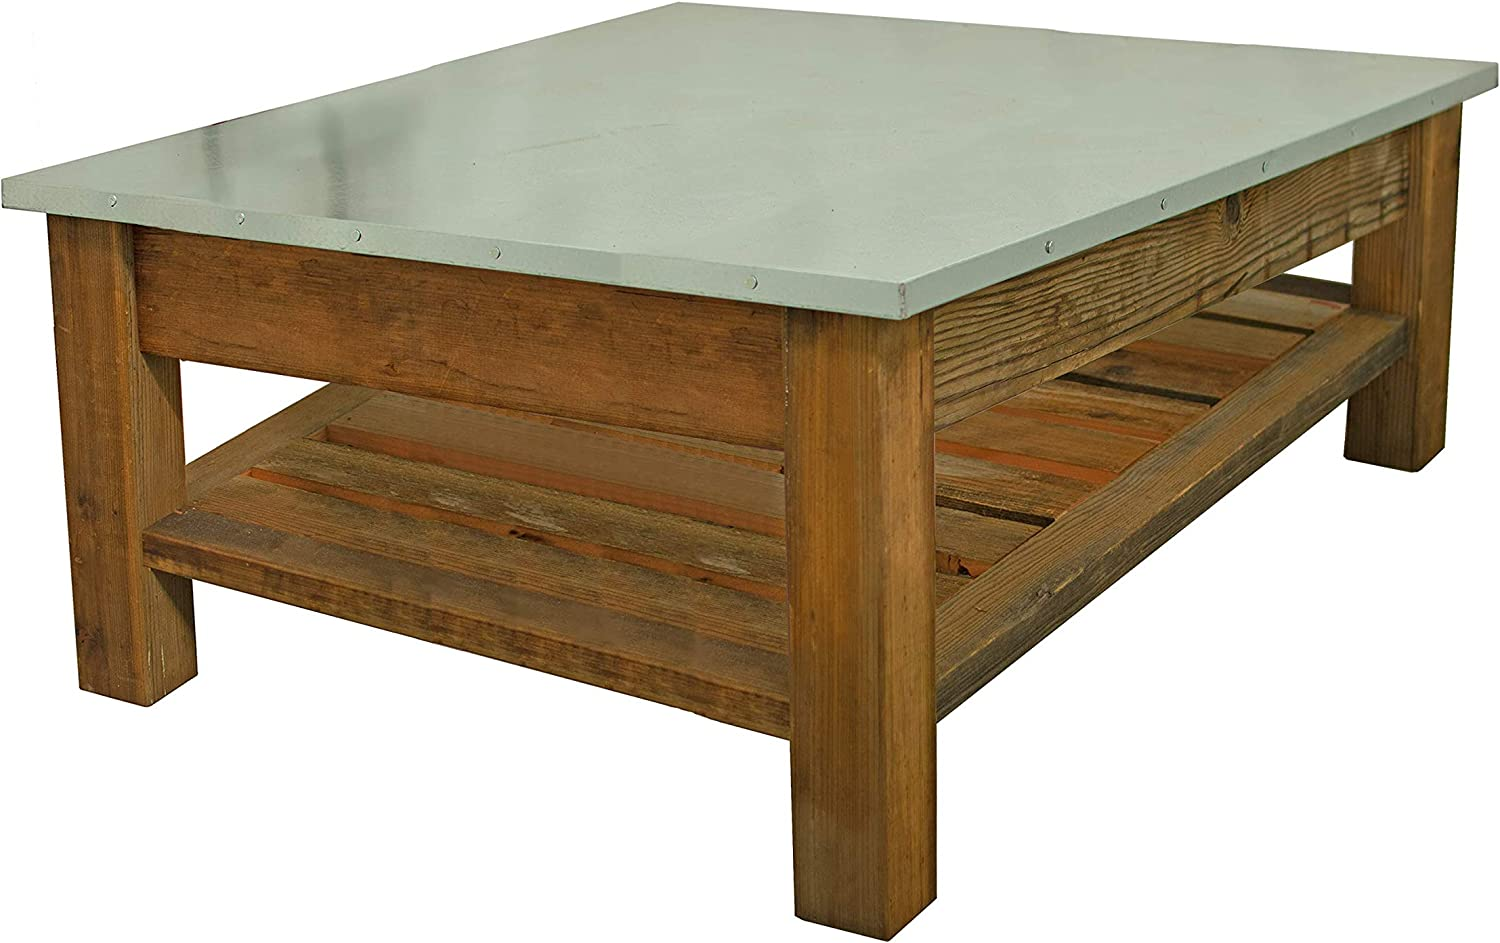 Redwood Patio Coffee Table Outdoor End Table Rustic Furniture (No Hardware)